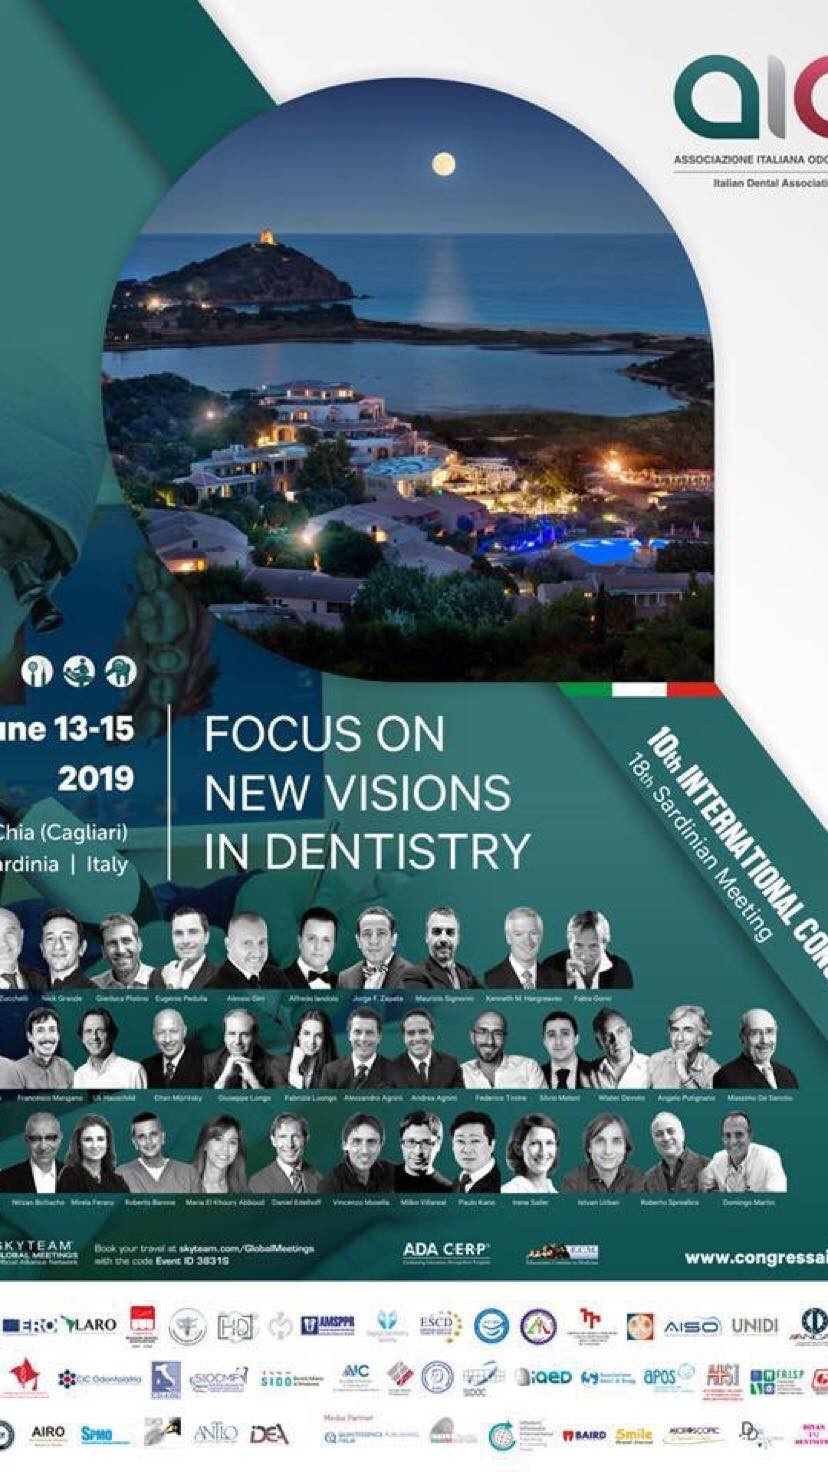 Focus on new visions in dentistry. Aio congress, Chia  June 13-15 - 2019